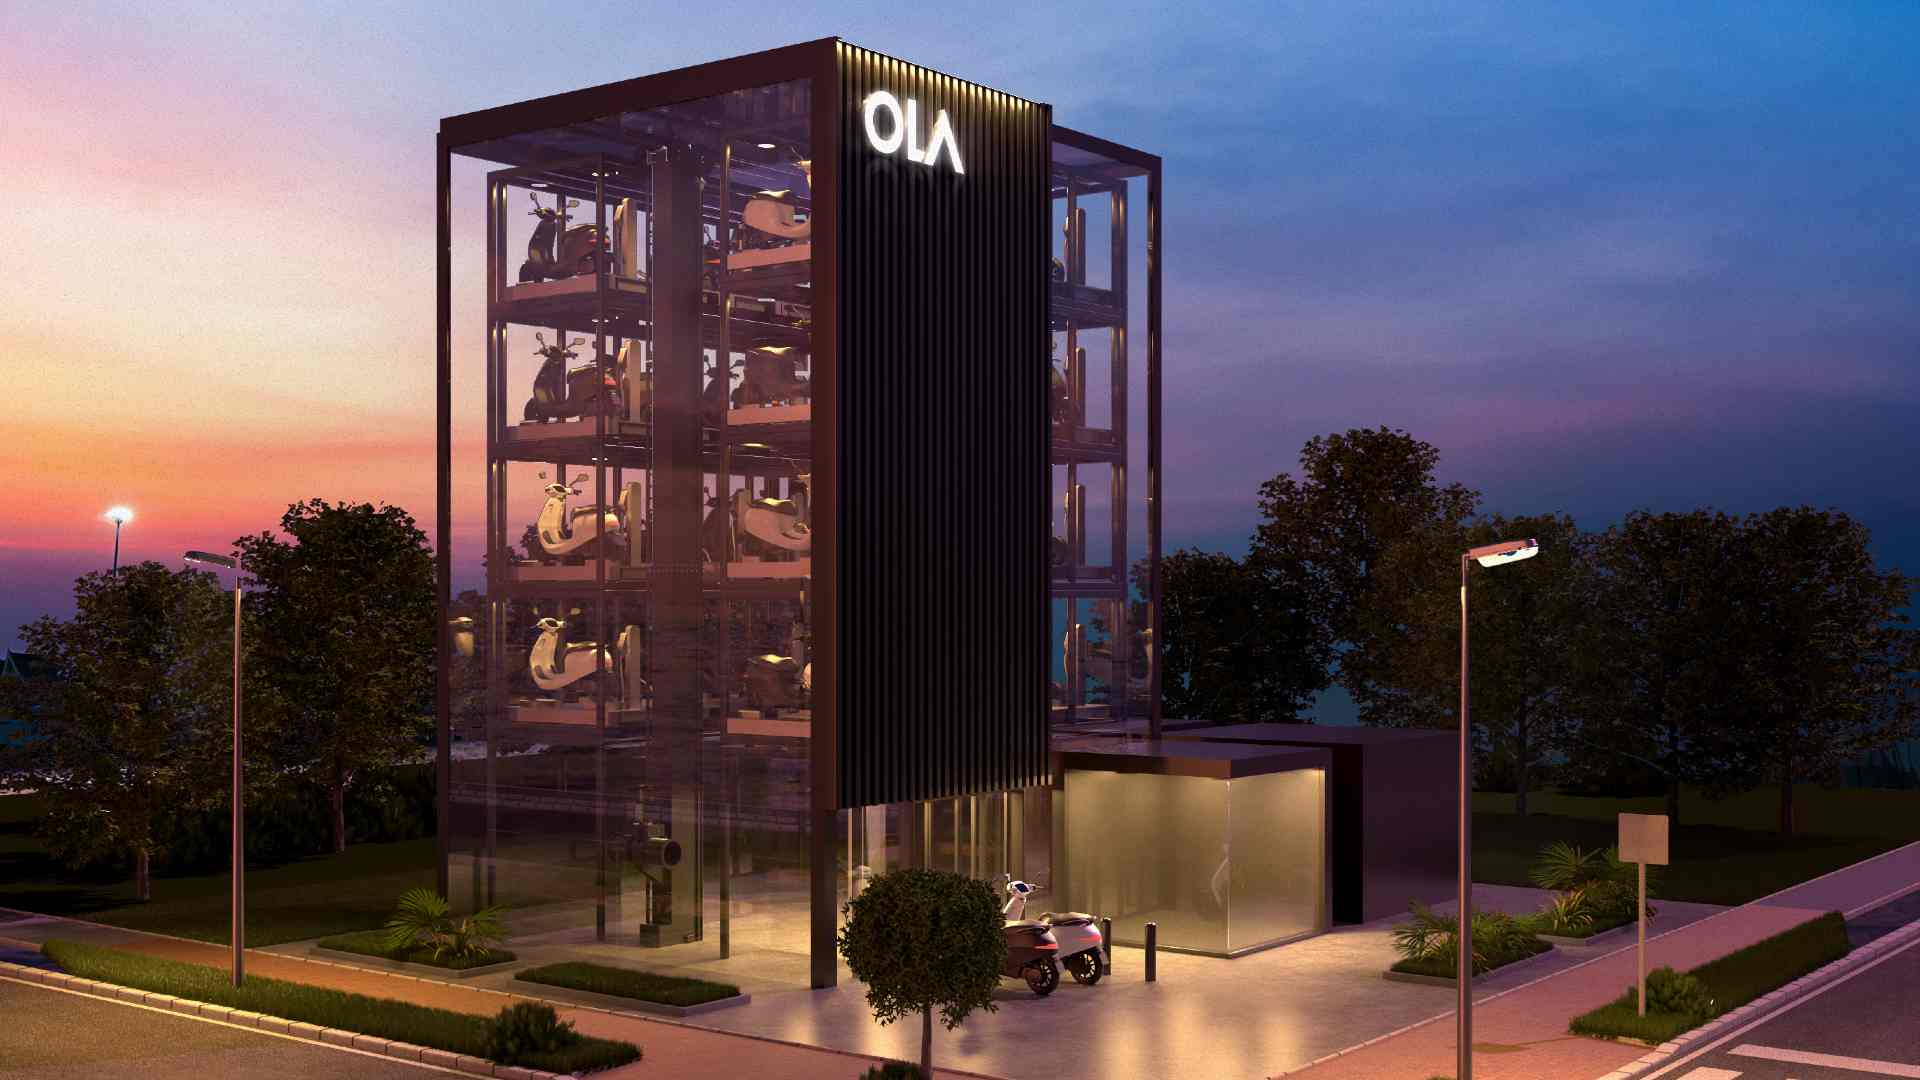 Ola Electric's standalone charging towers will feature automated multi-level parking. Image: Ola Electric